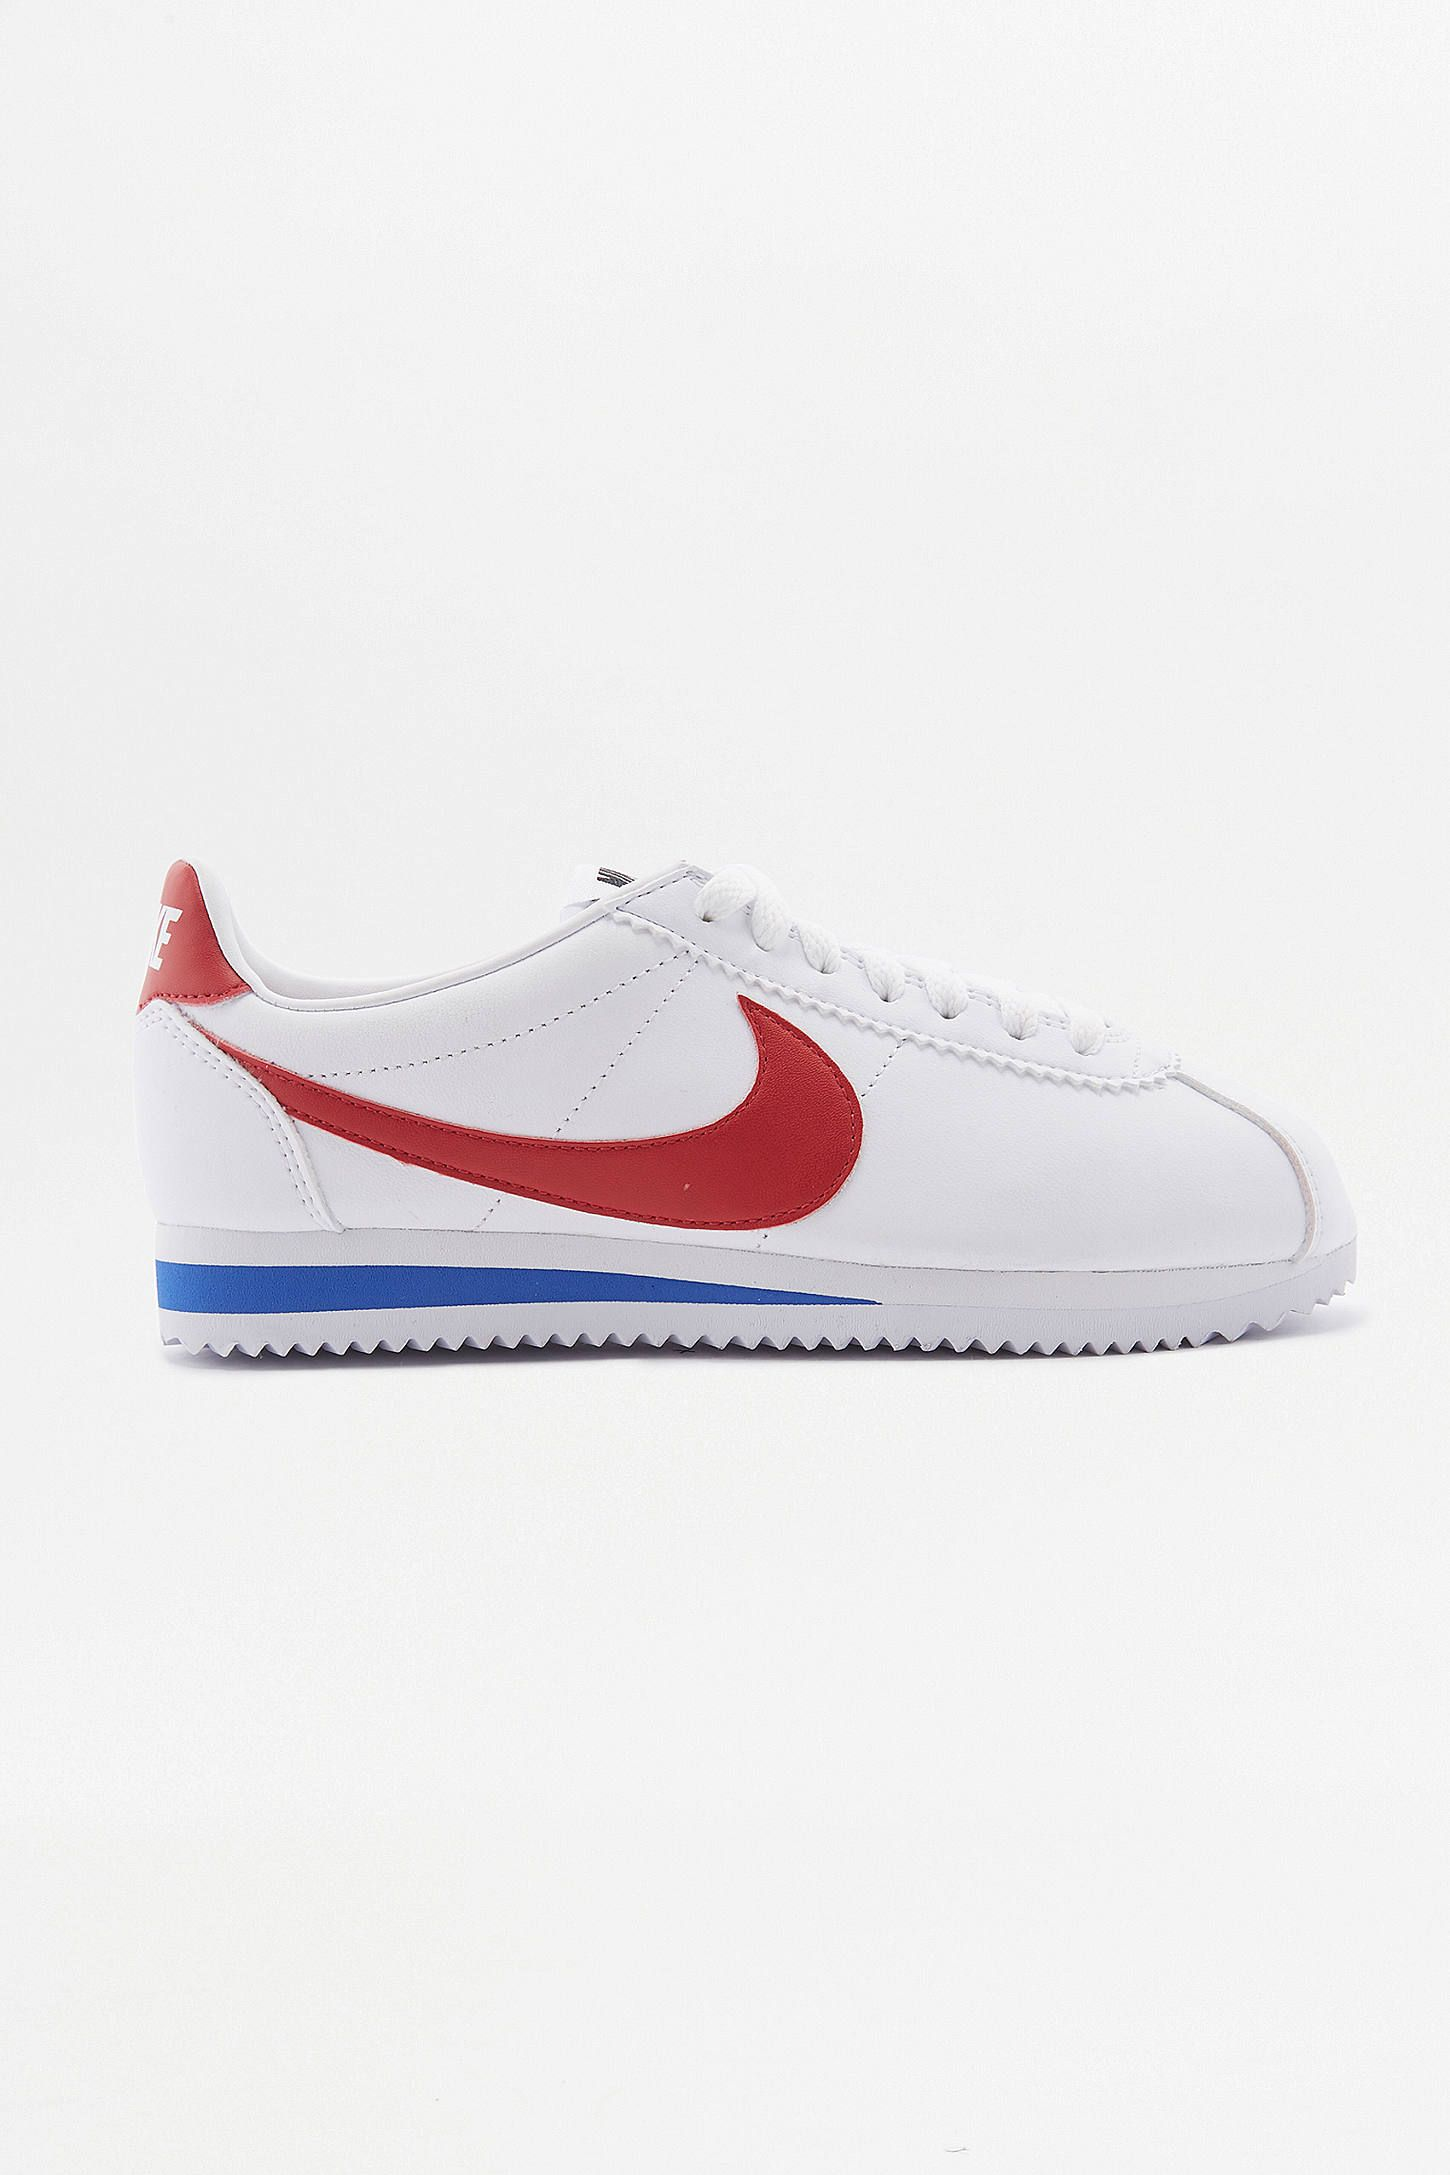 info for 0c25f 75b74 Slide View 2 Nike Cortez White Red And Blue Leather Trainers